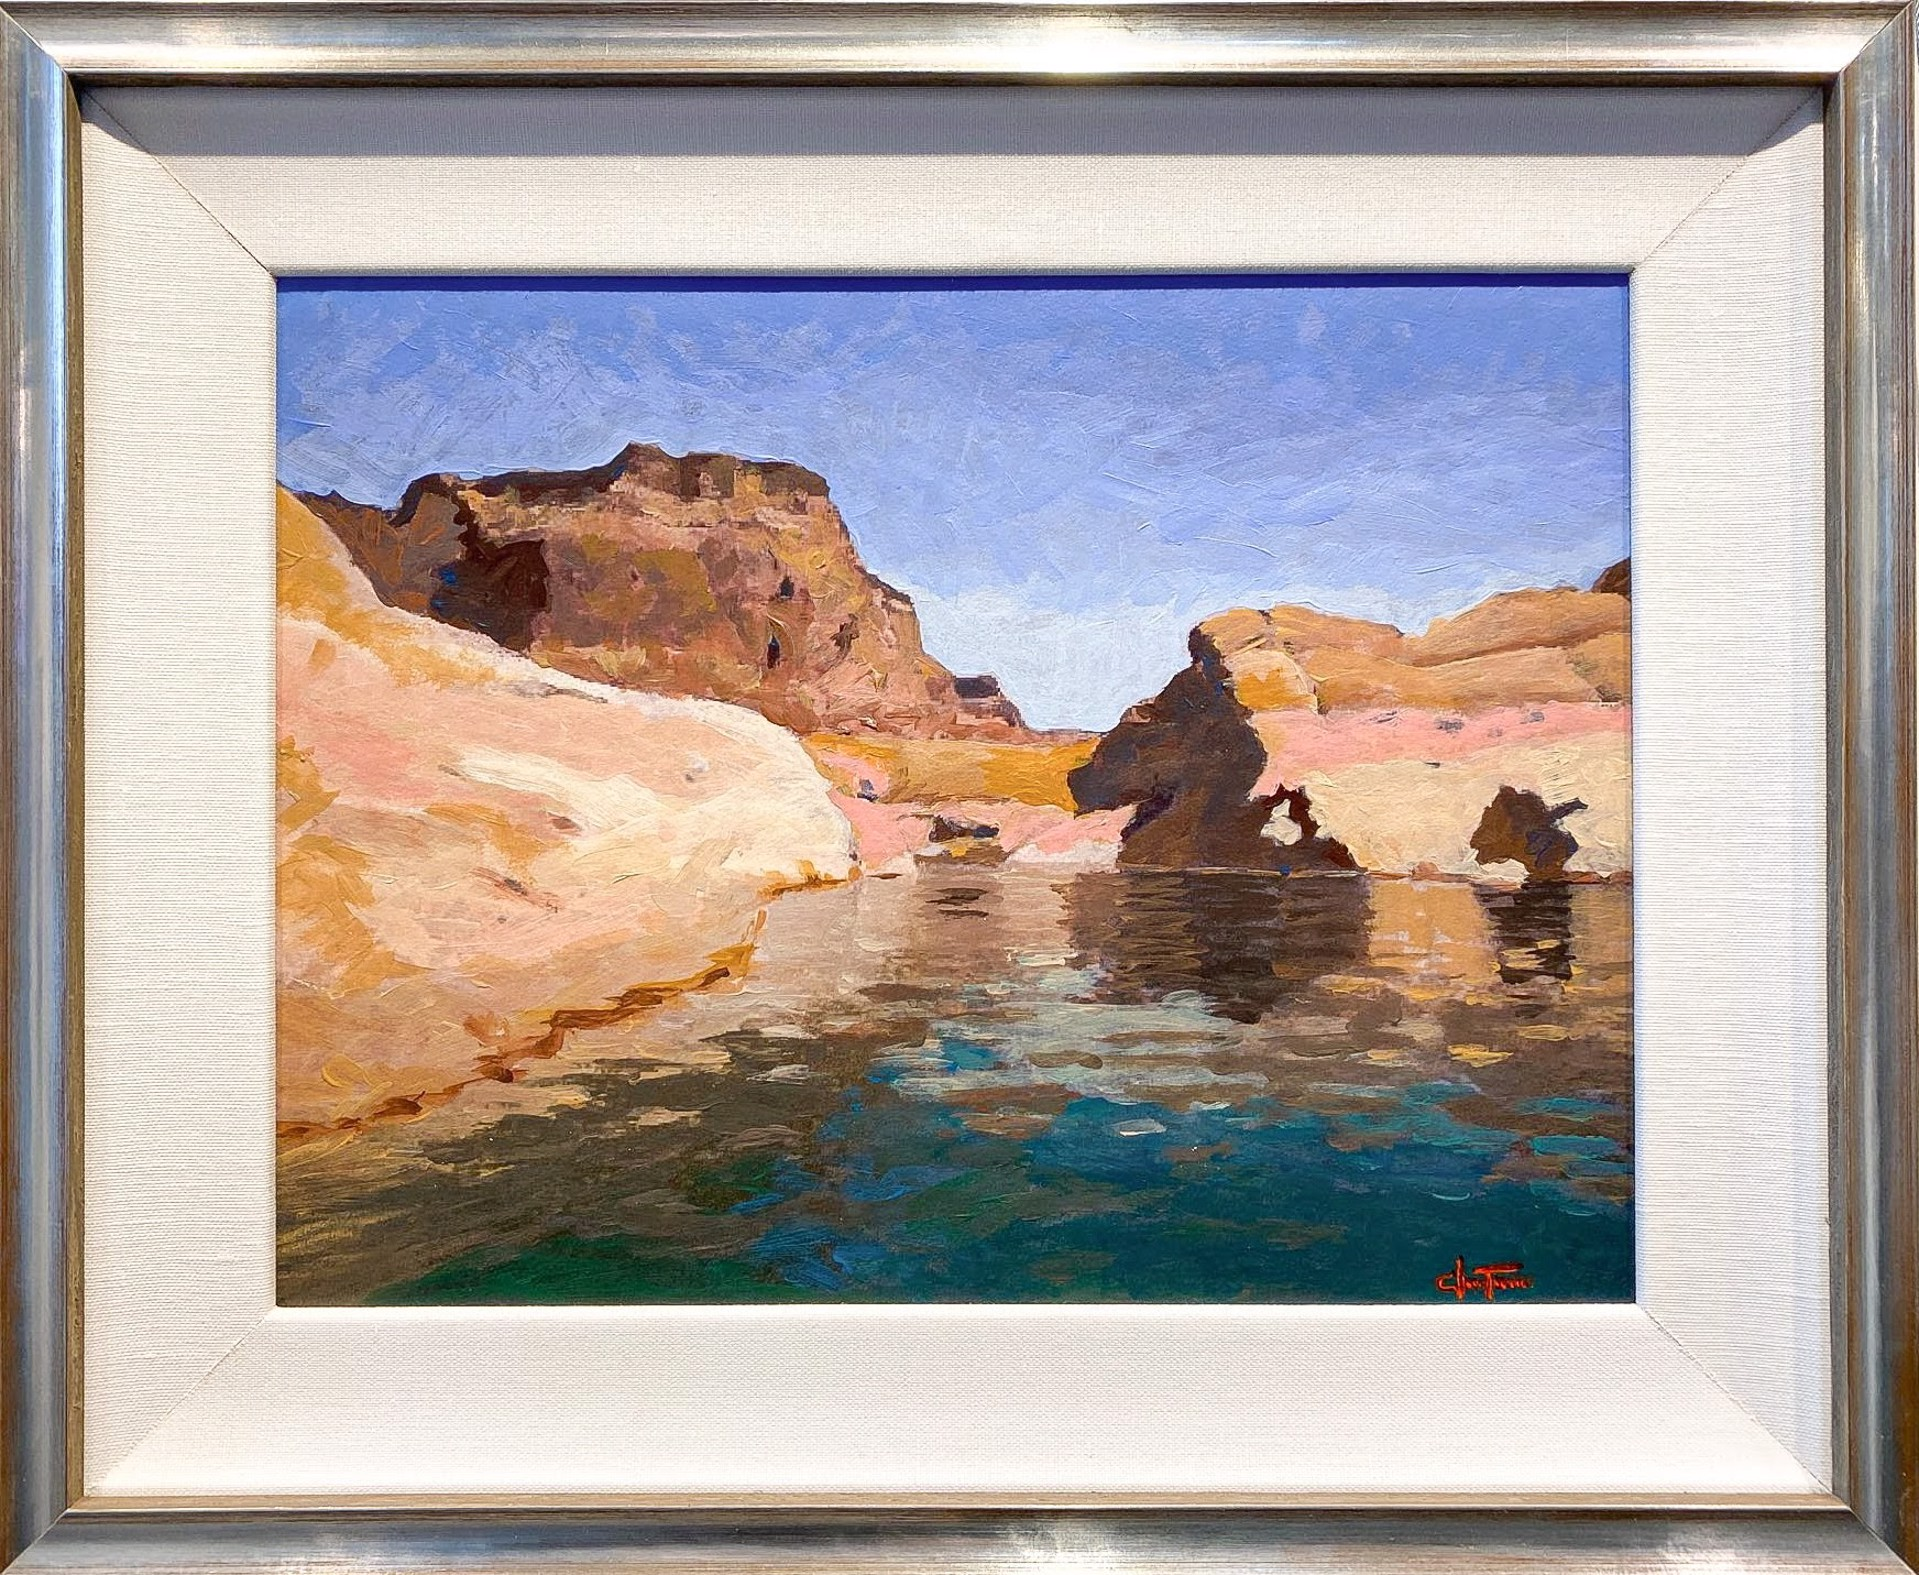 Lake Powell 4 P.M. by Christopher Turner